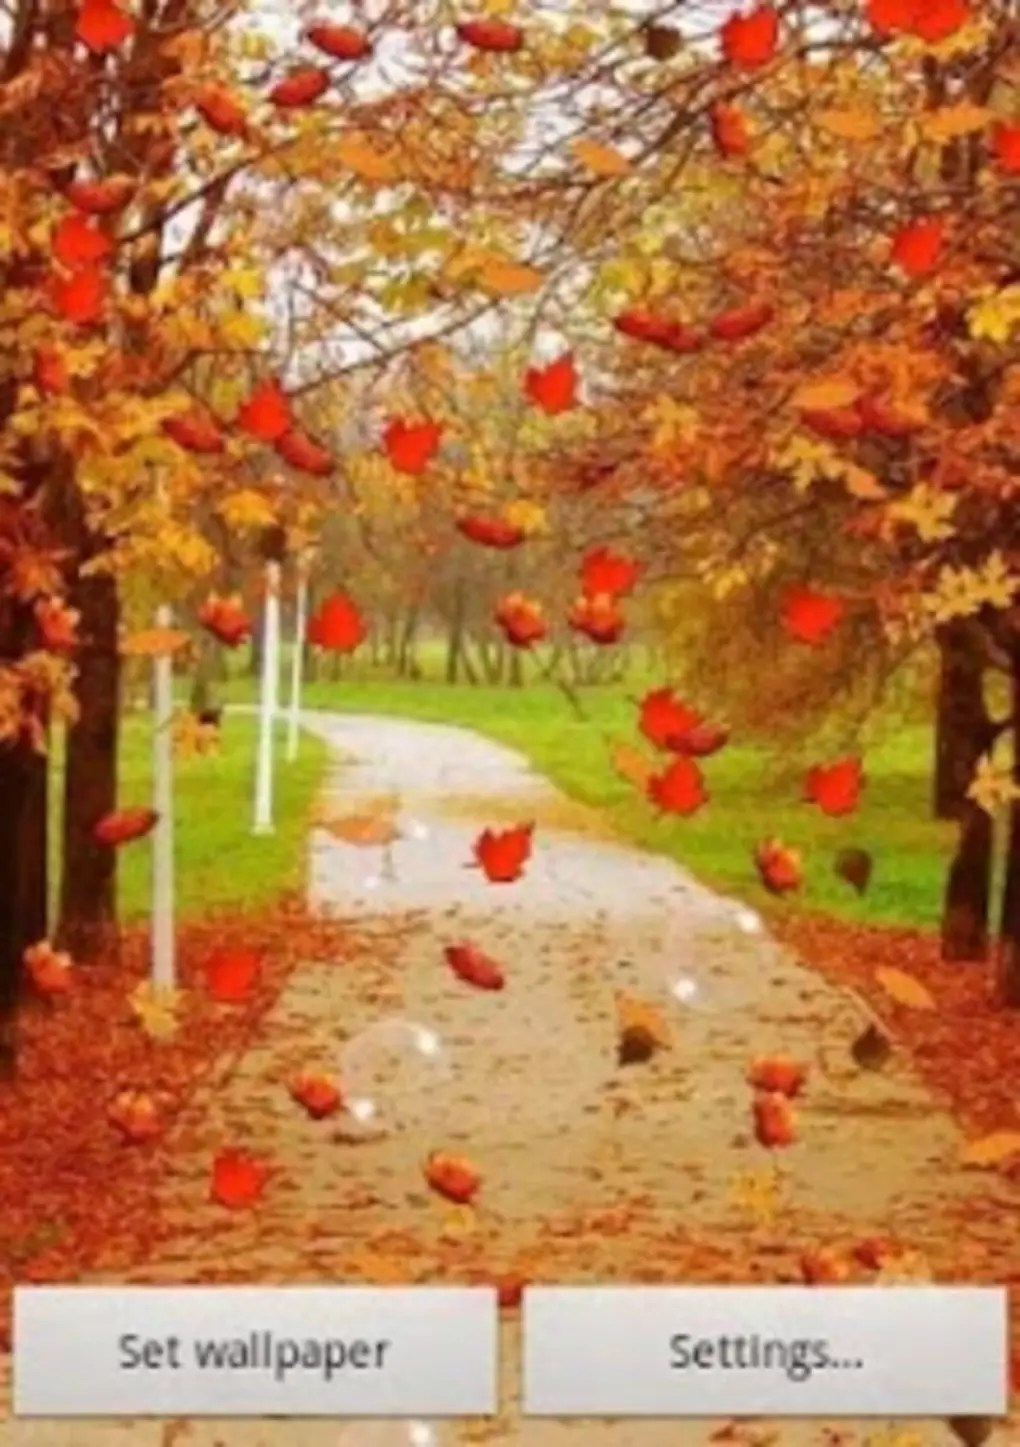 Falling Leaves Wallpaper Blackberry Autumn Live Wallpaper Free For Android Download